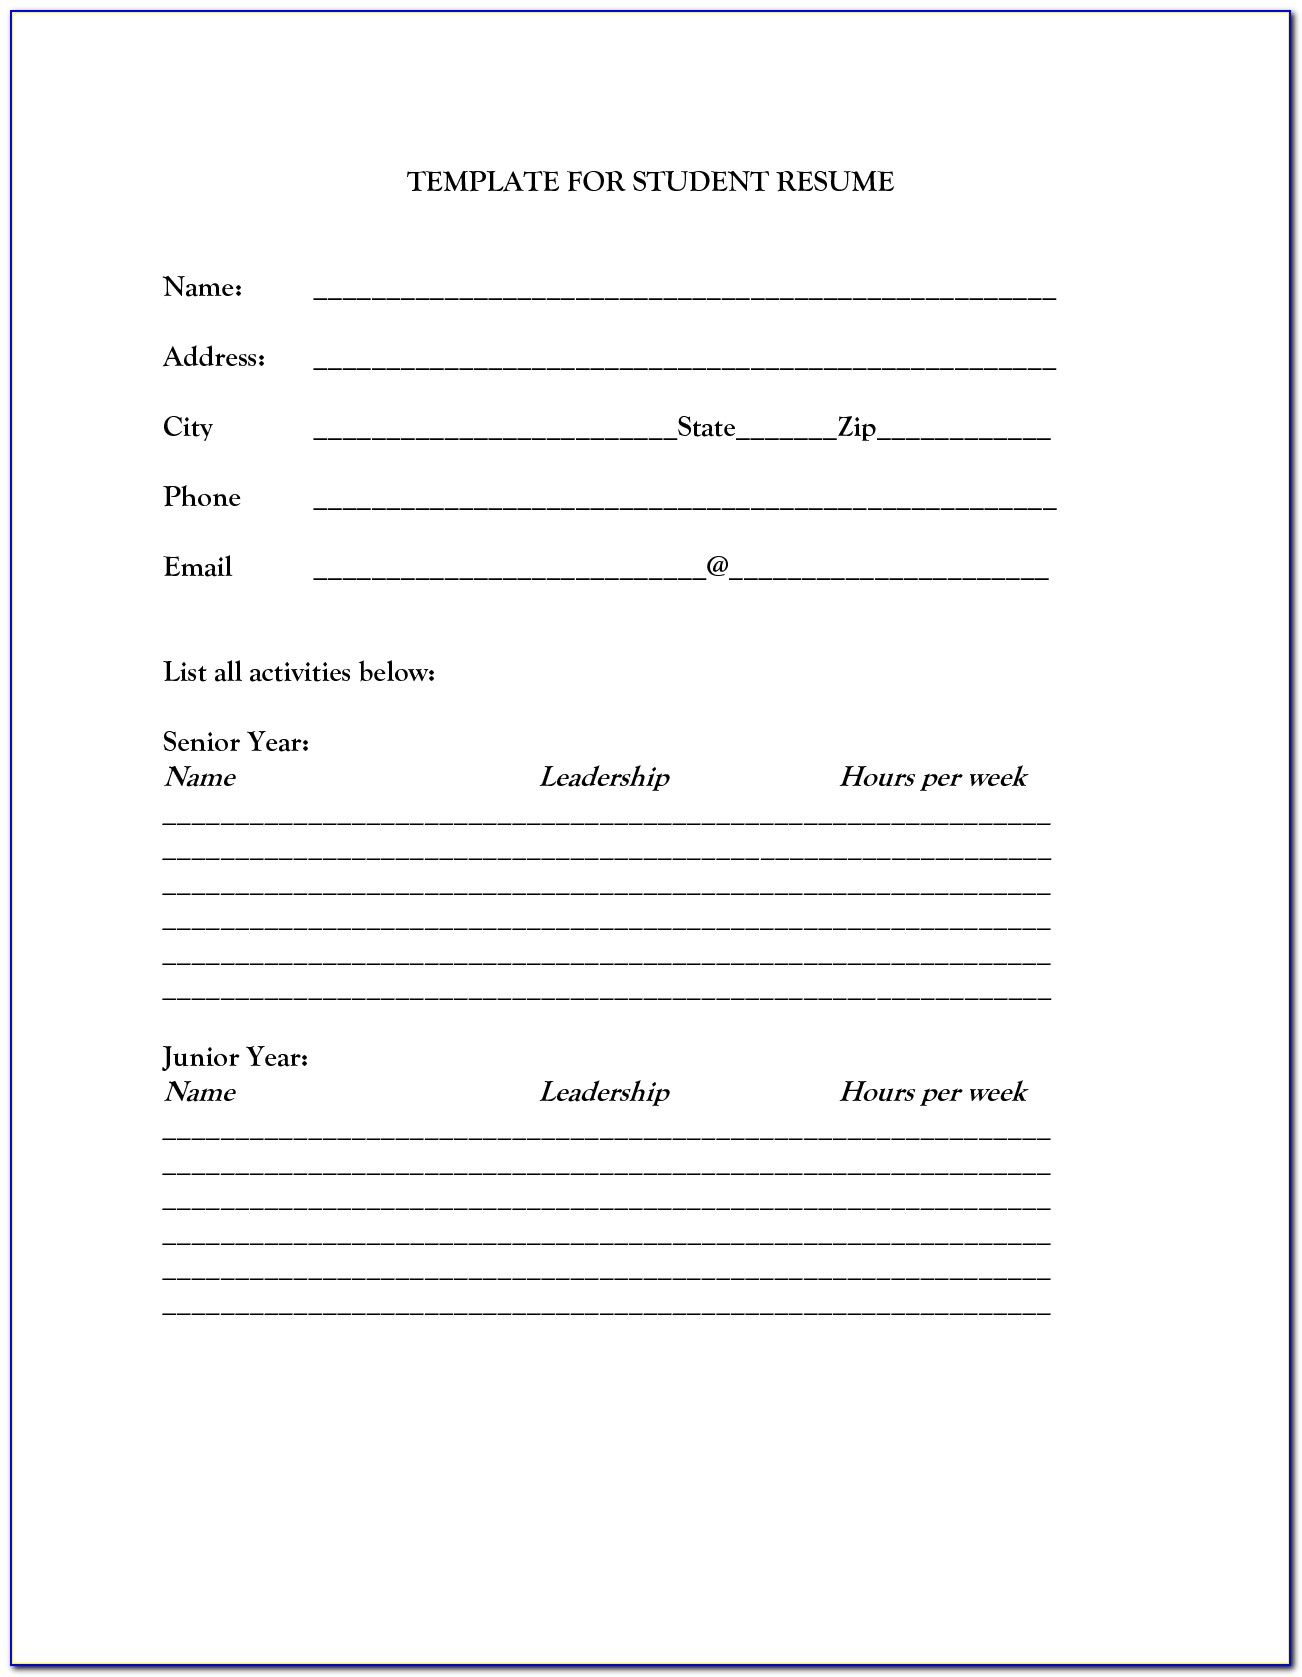 printable resume template free word pdf documents within vincegray2014 and templates Resume Free And Printable Resume Templates